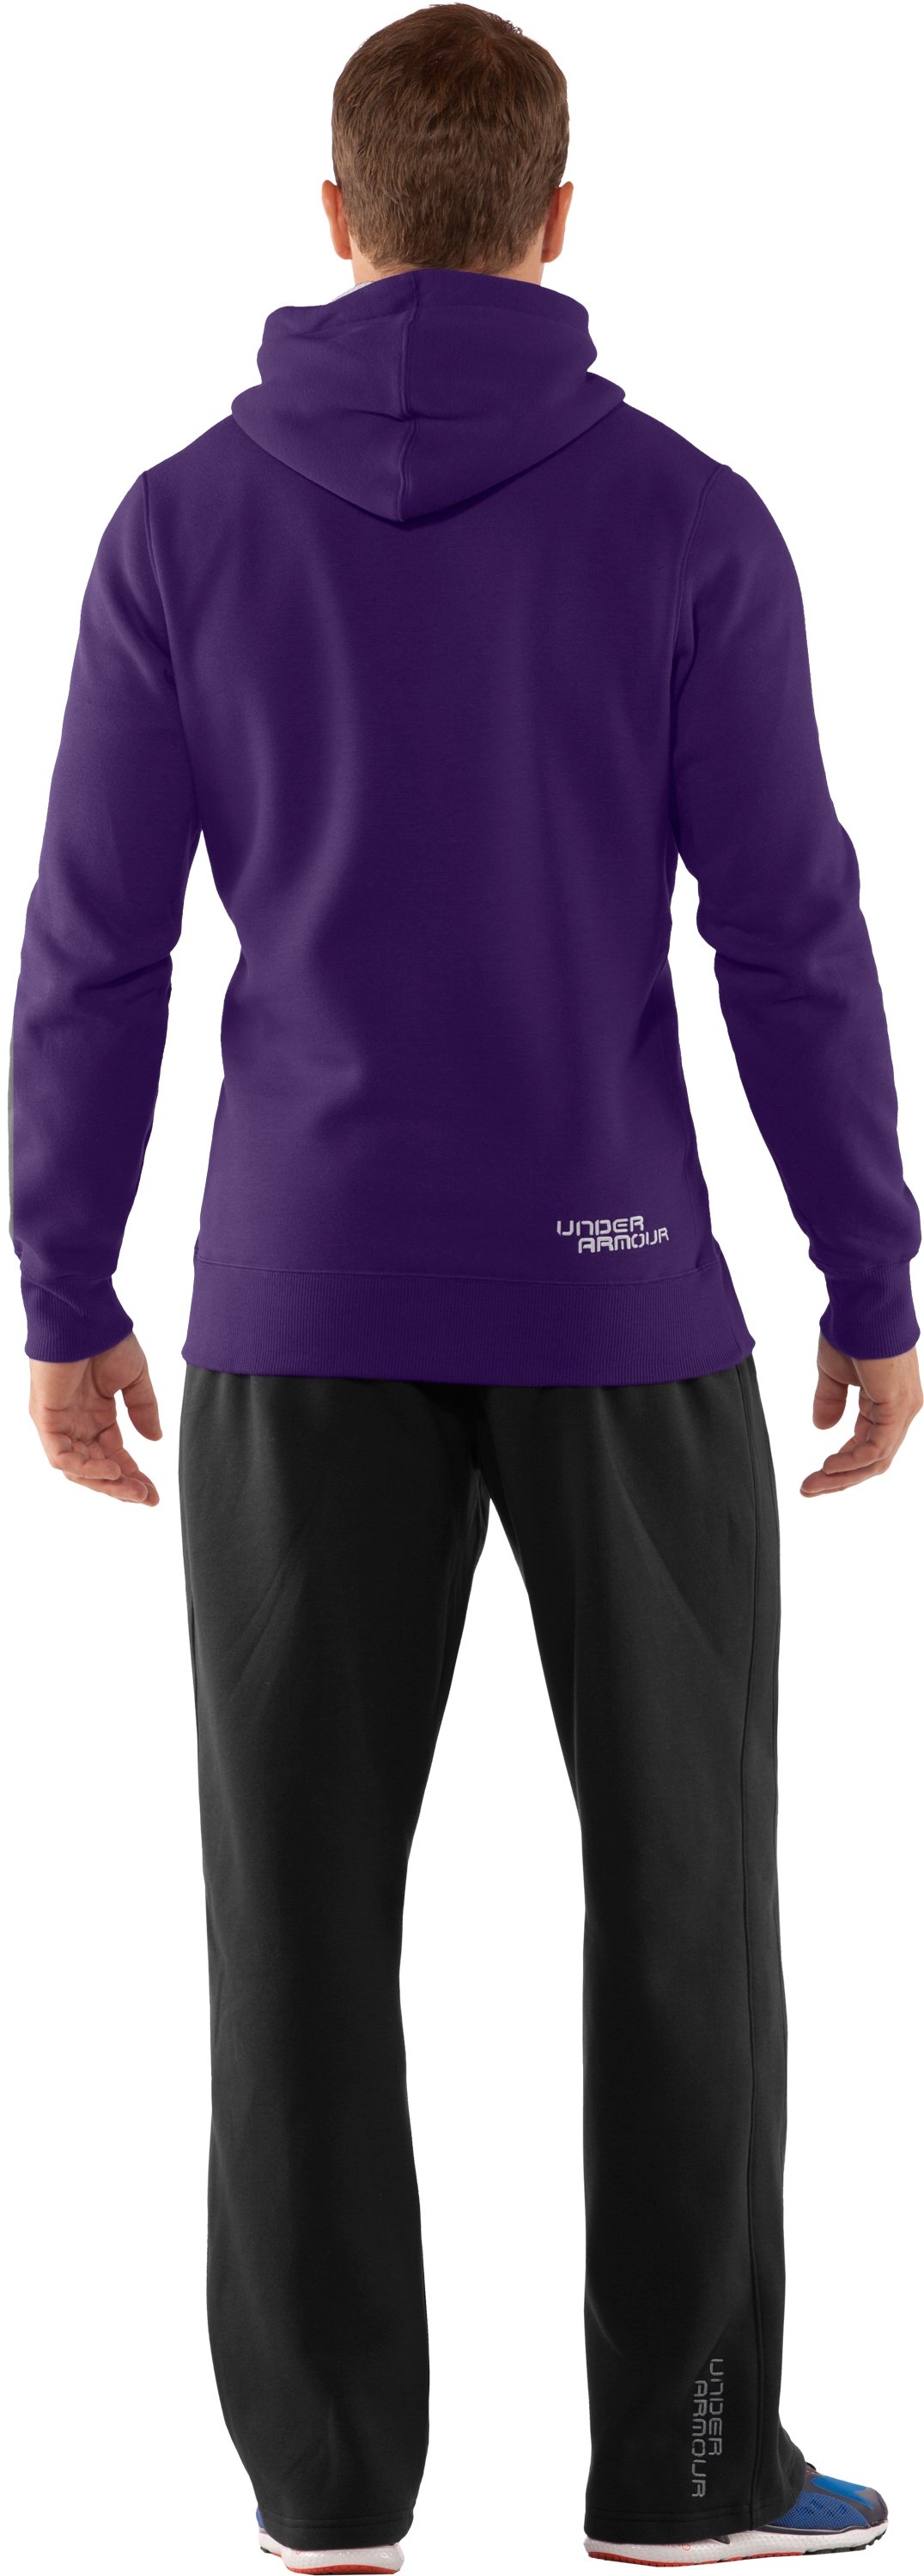 Men's Charged Cotton® Storm Pullover Hoodie, Zone, Back